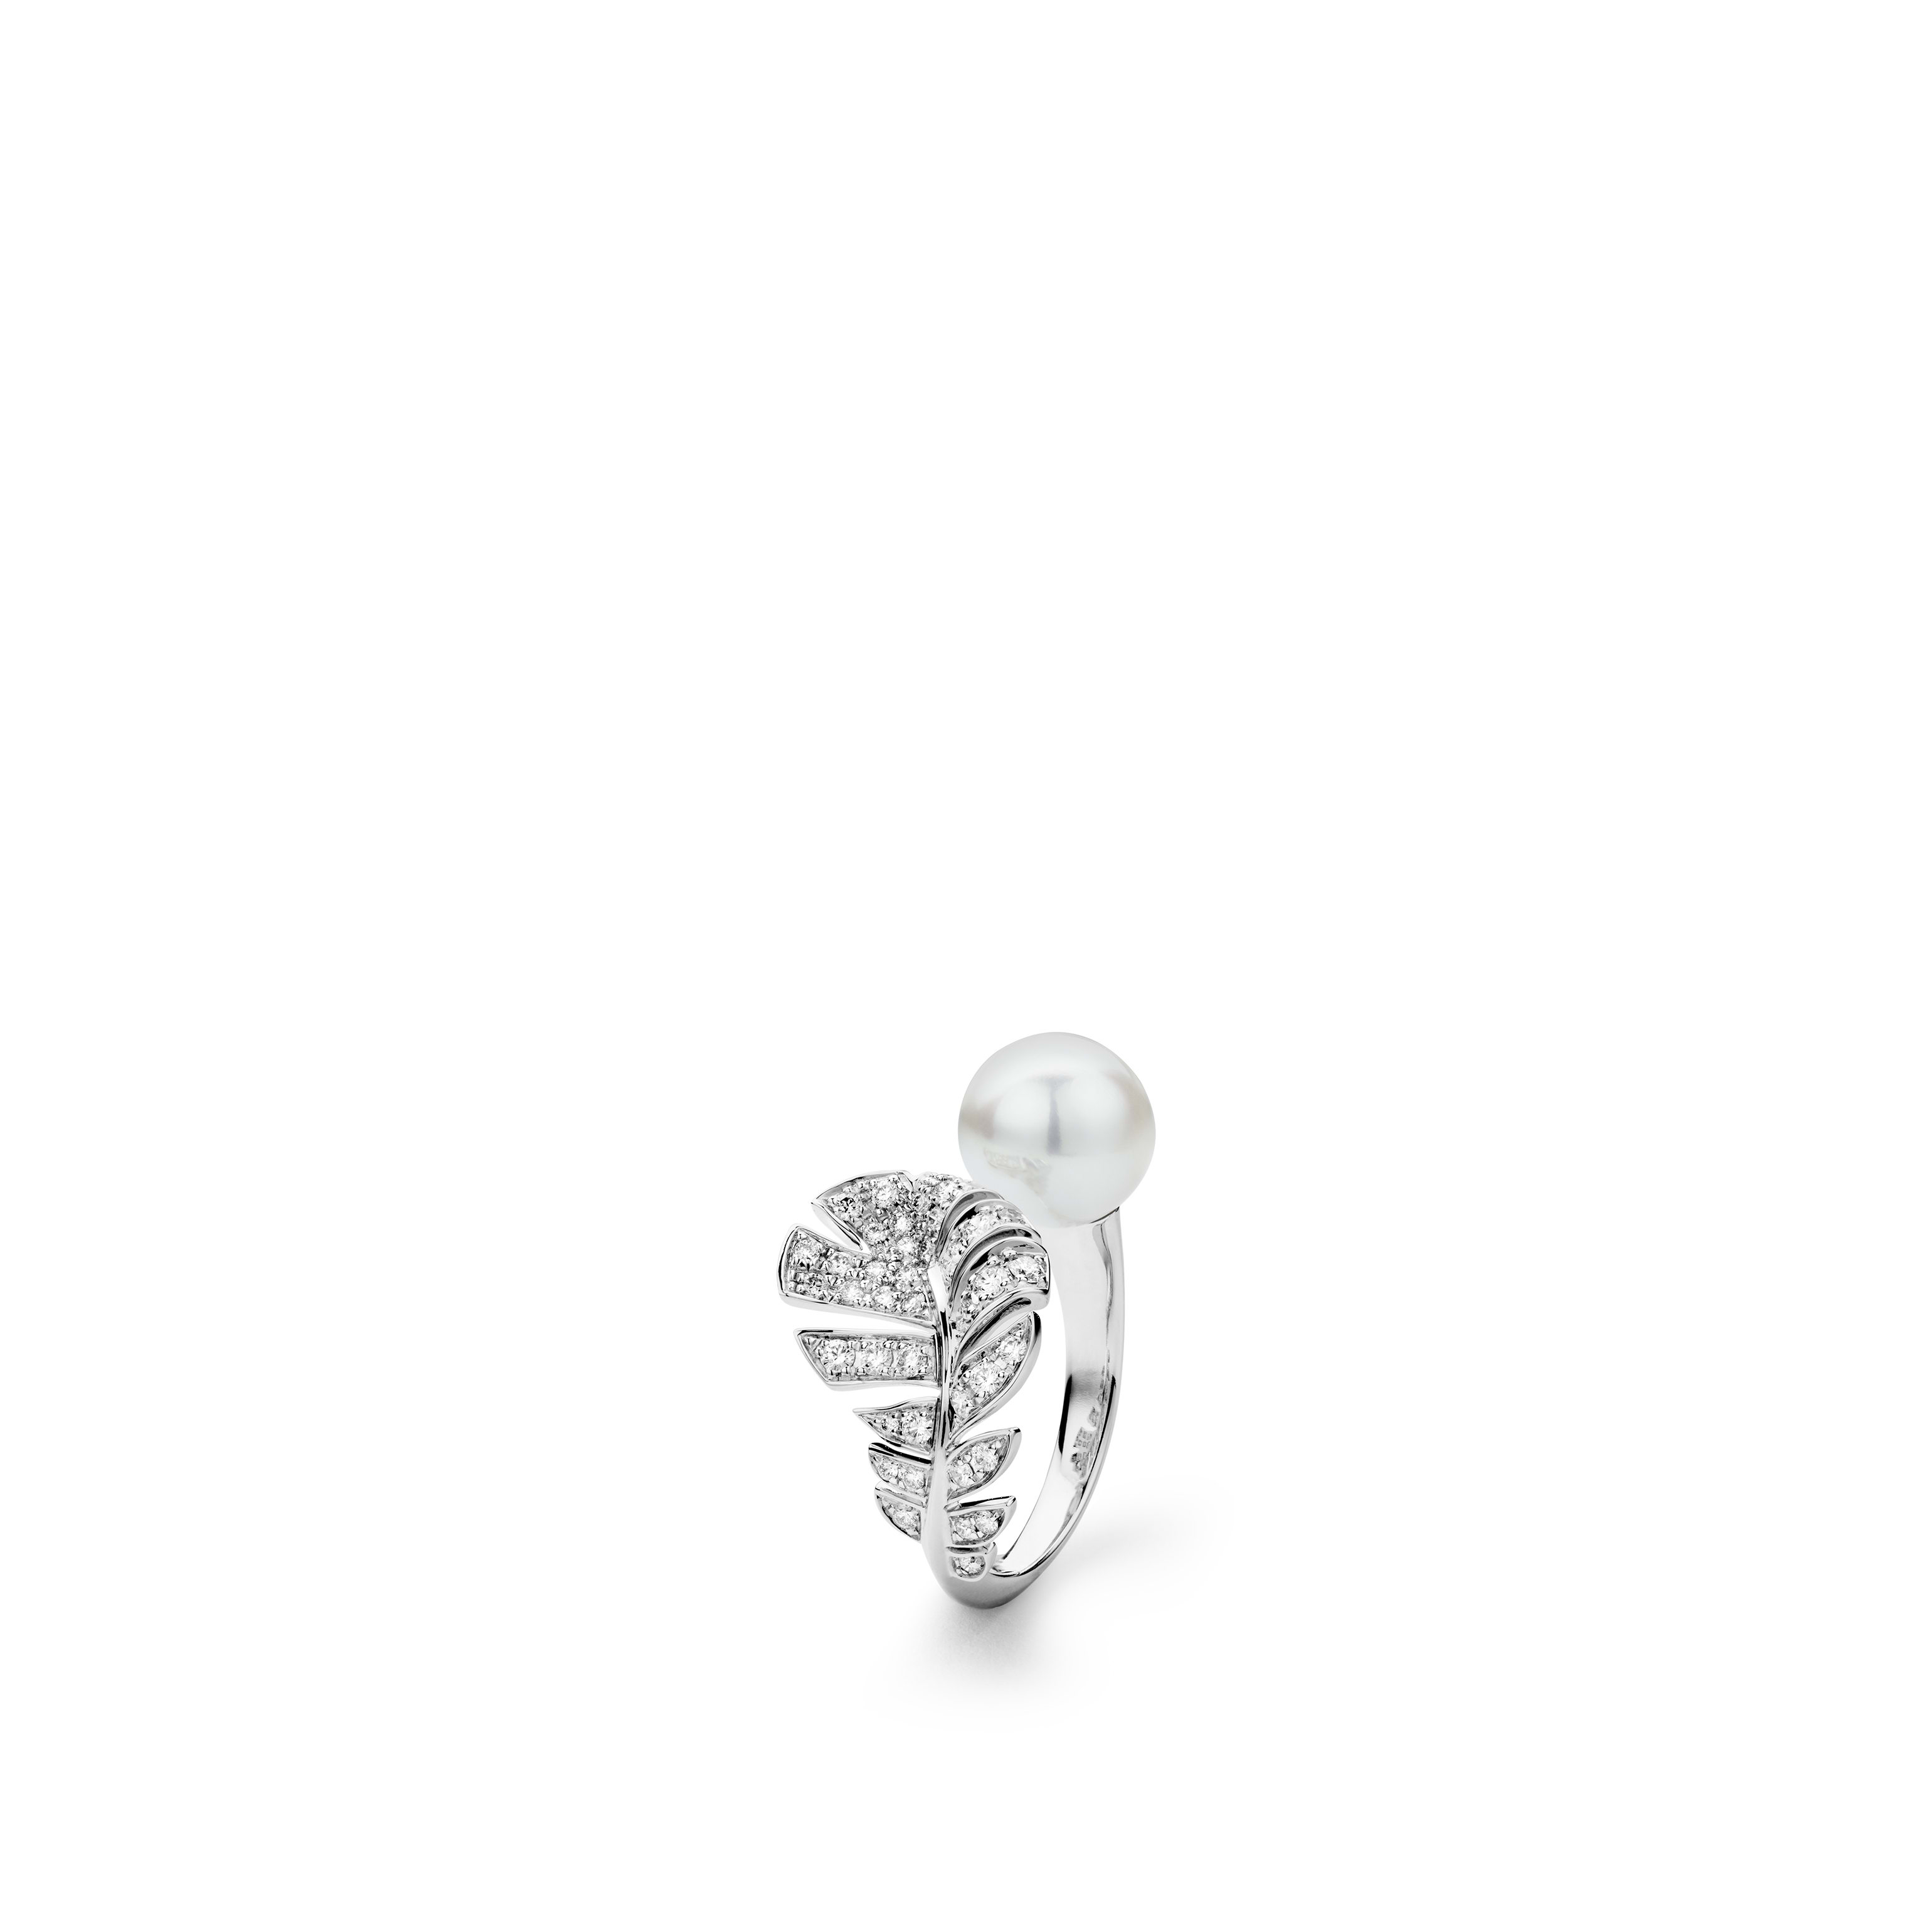 Plume de CHANEL ring - 18K white gold, diamonds, cultured pearl - CHANEL - Default view - see standard sized version